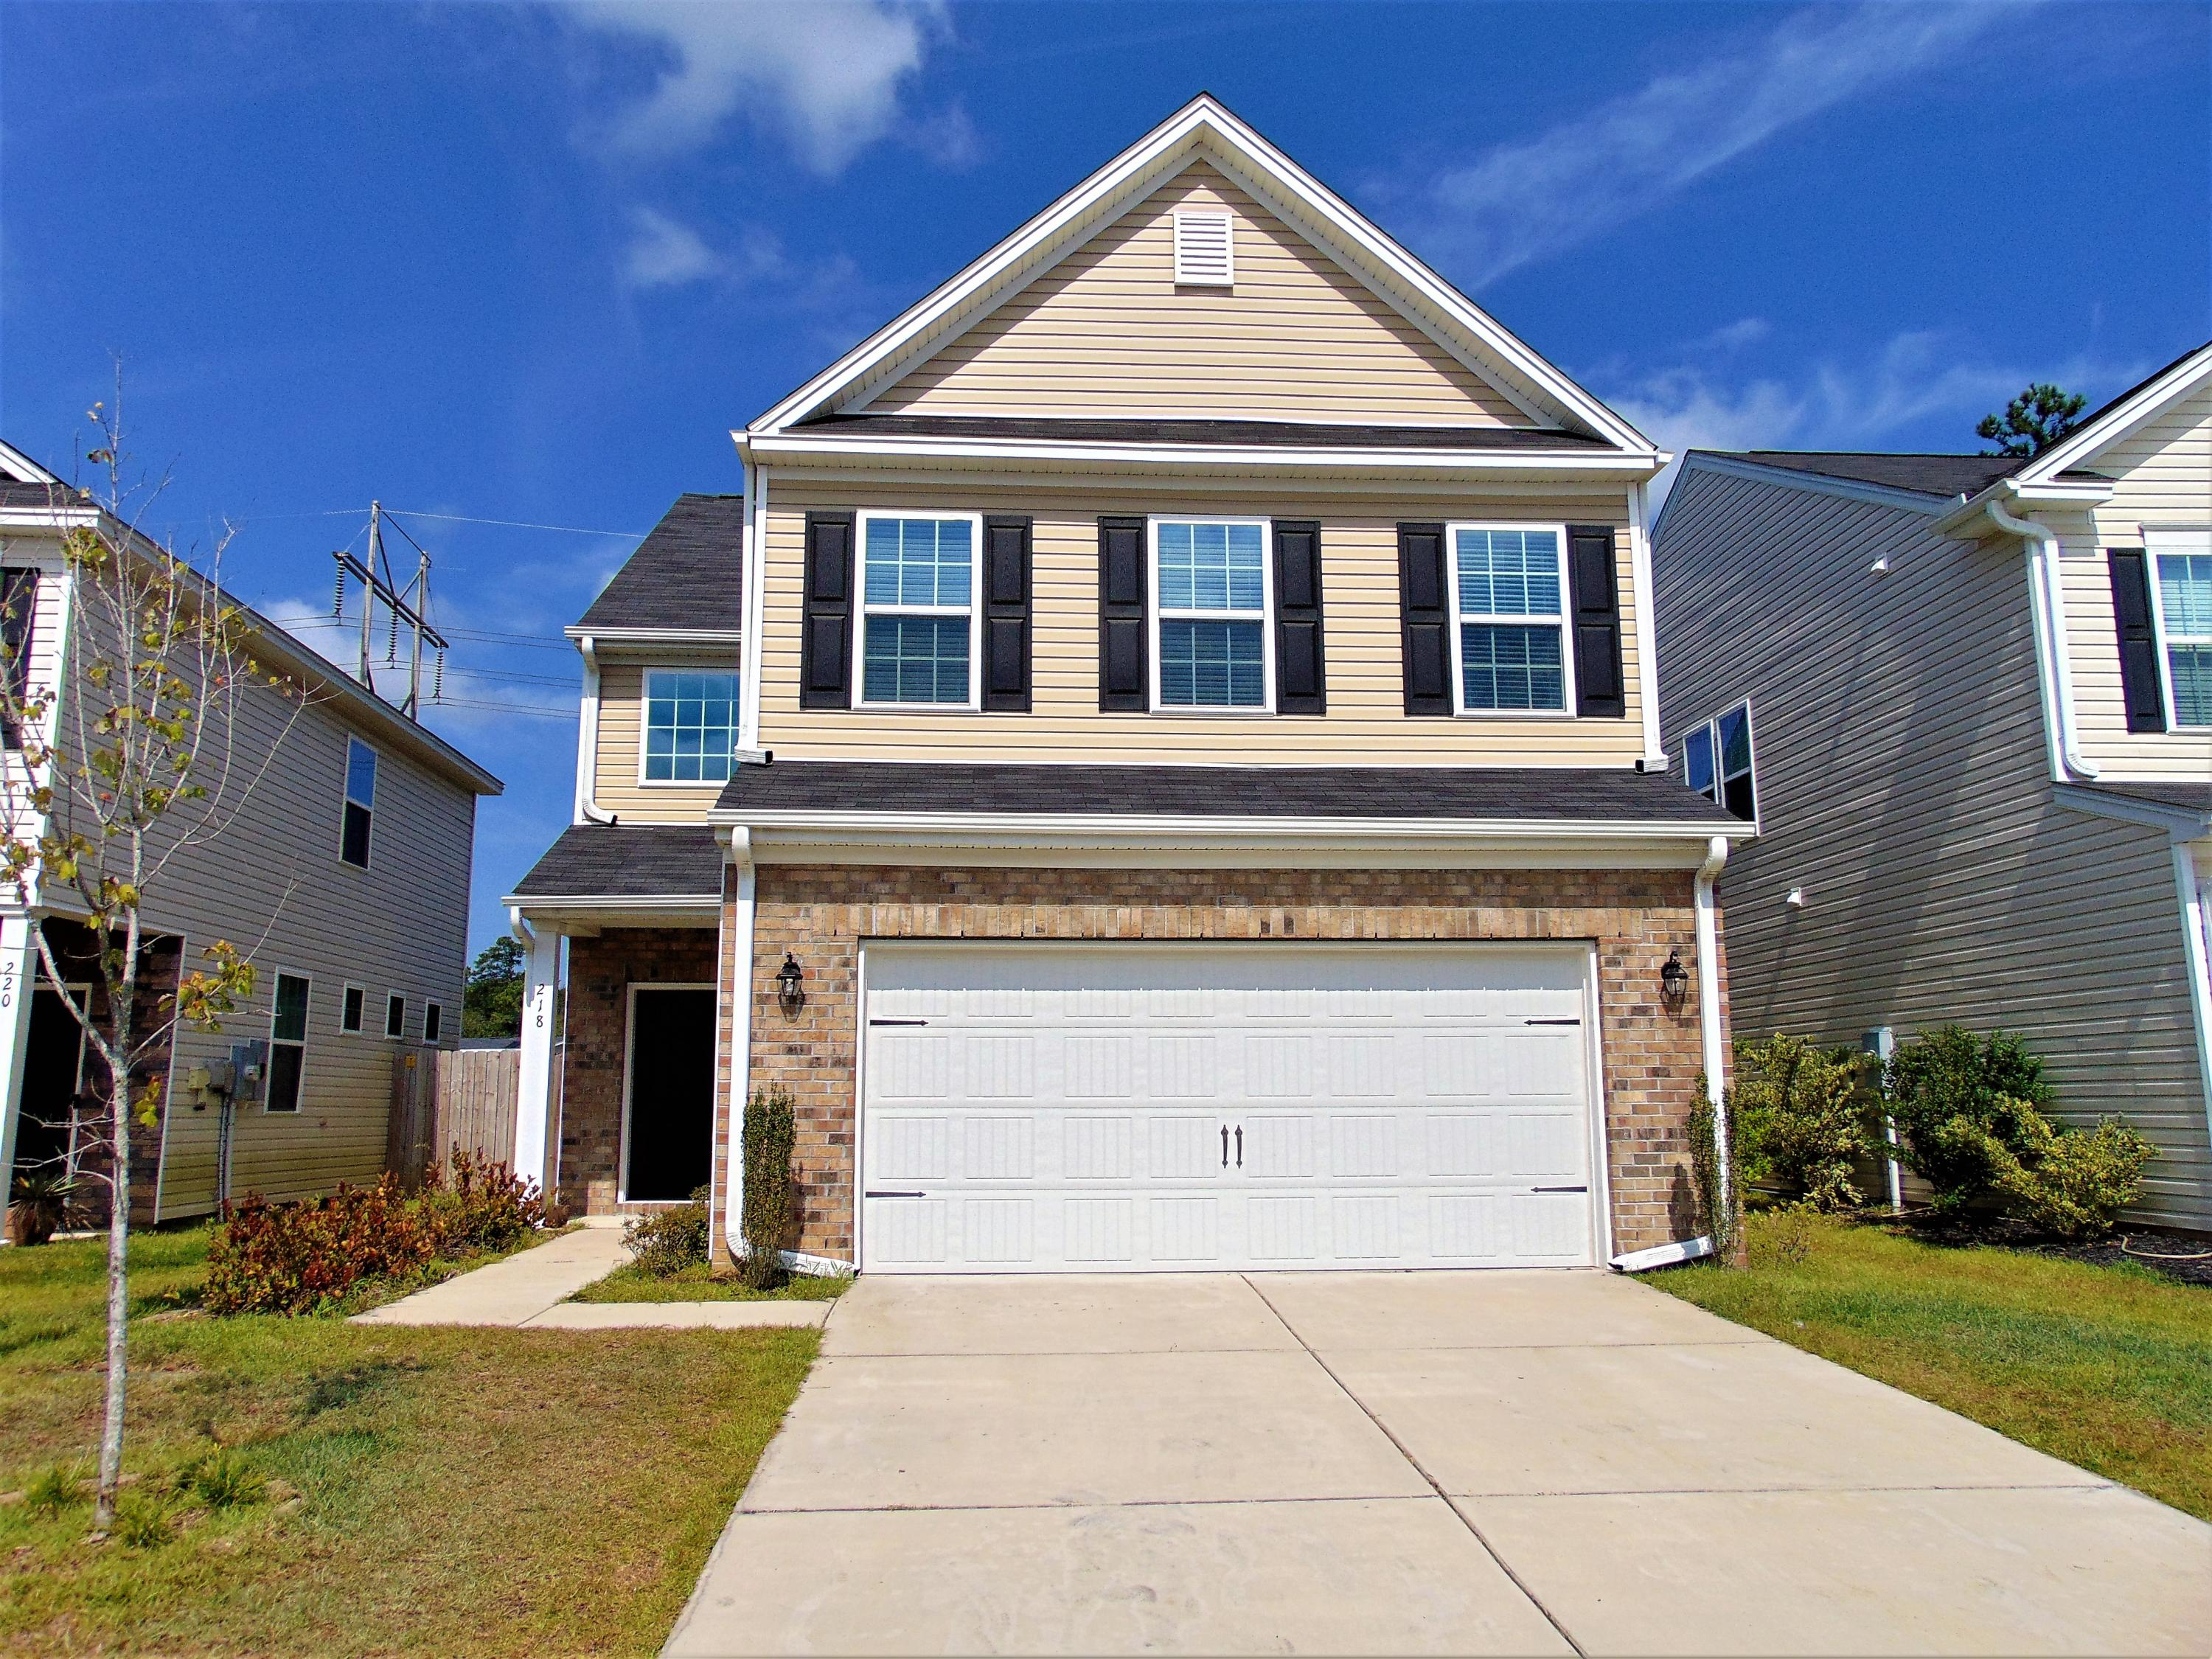 218 Swamp Creek Lane Moncks Corner, SC 29461